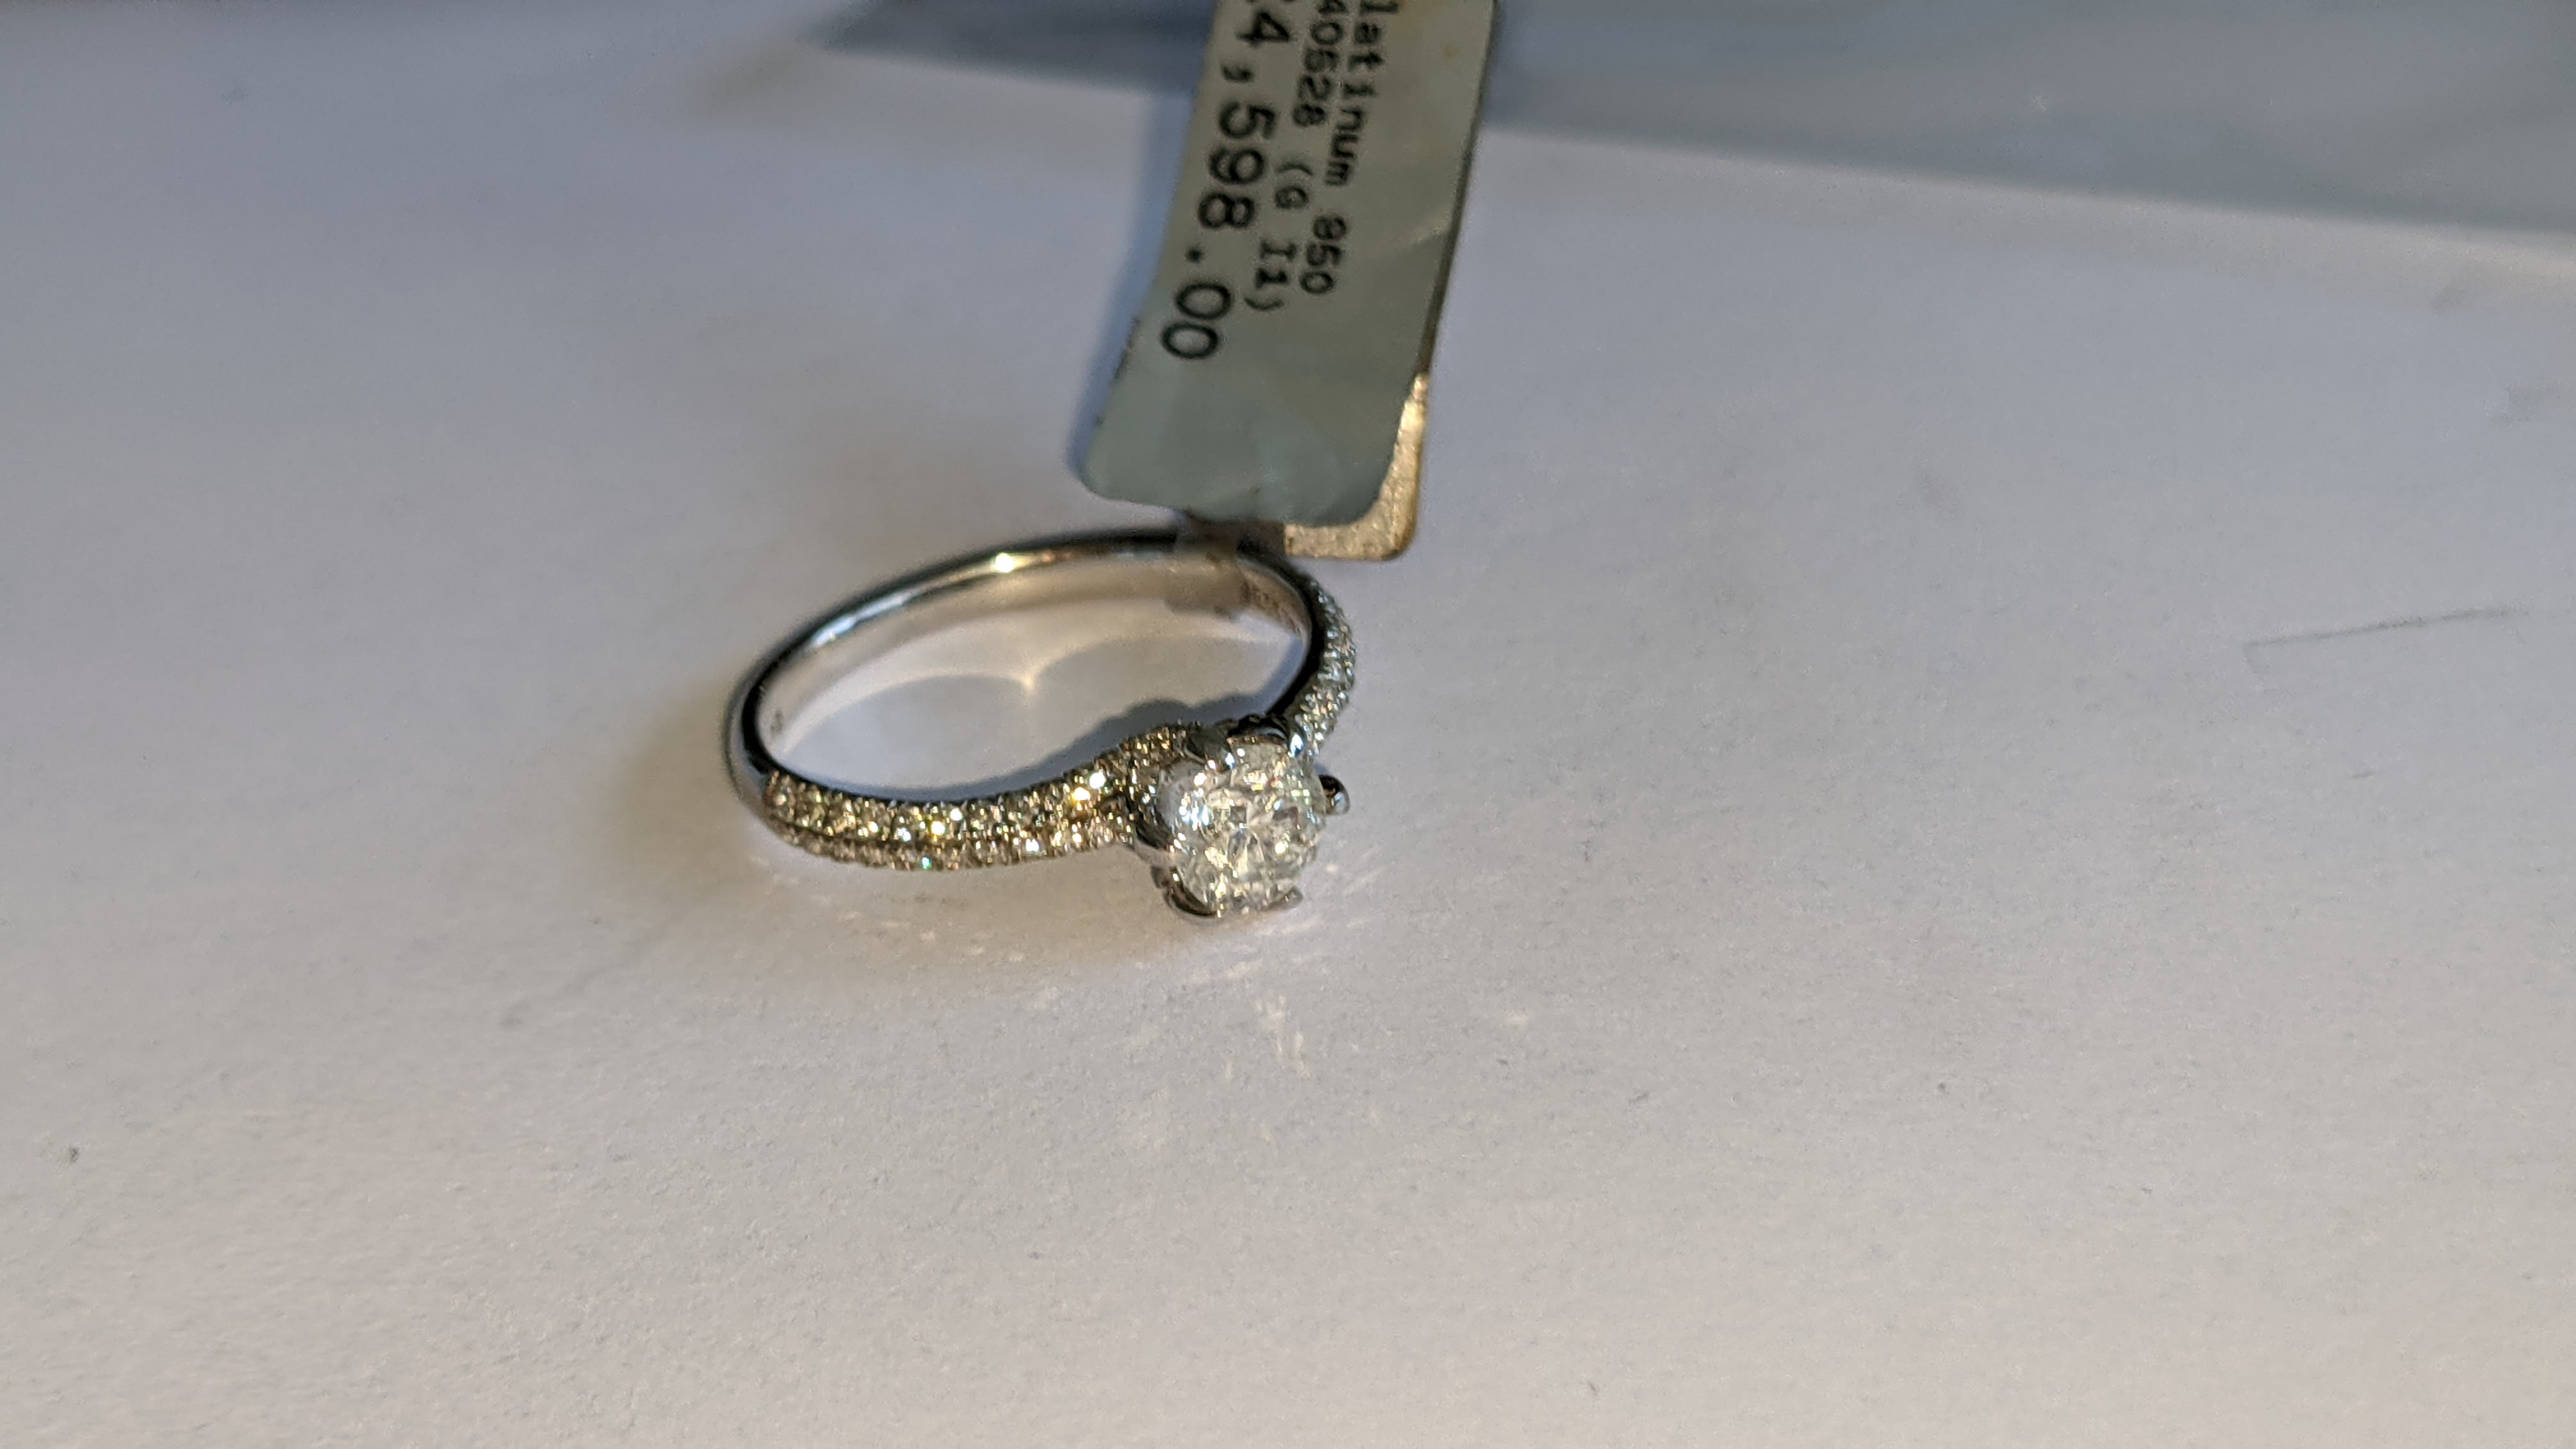 Platinum 950 diamond ring with 0.55ct central stone & 0.348ct of smaller stones on the shoulders. RR - Image 7 of 16